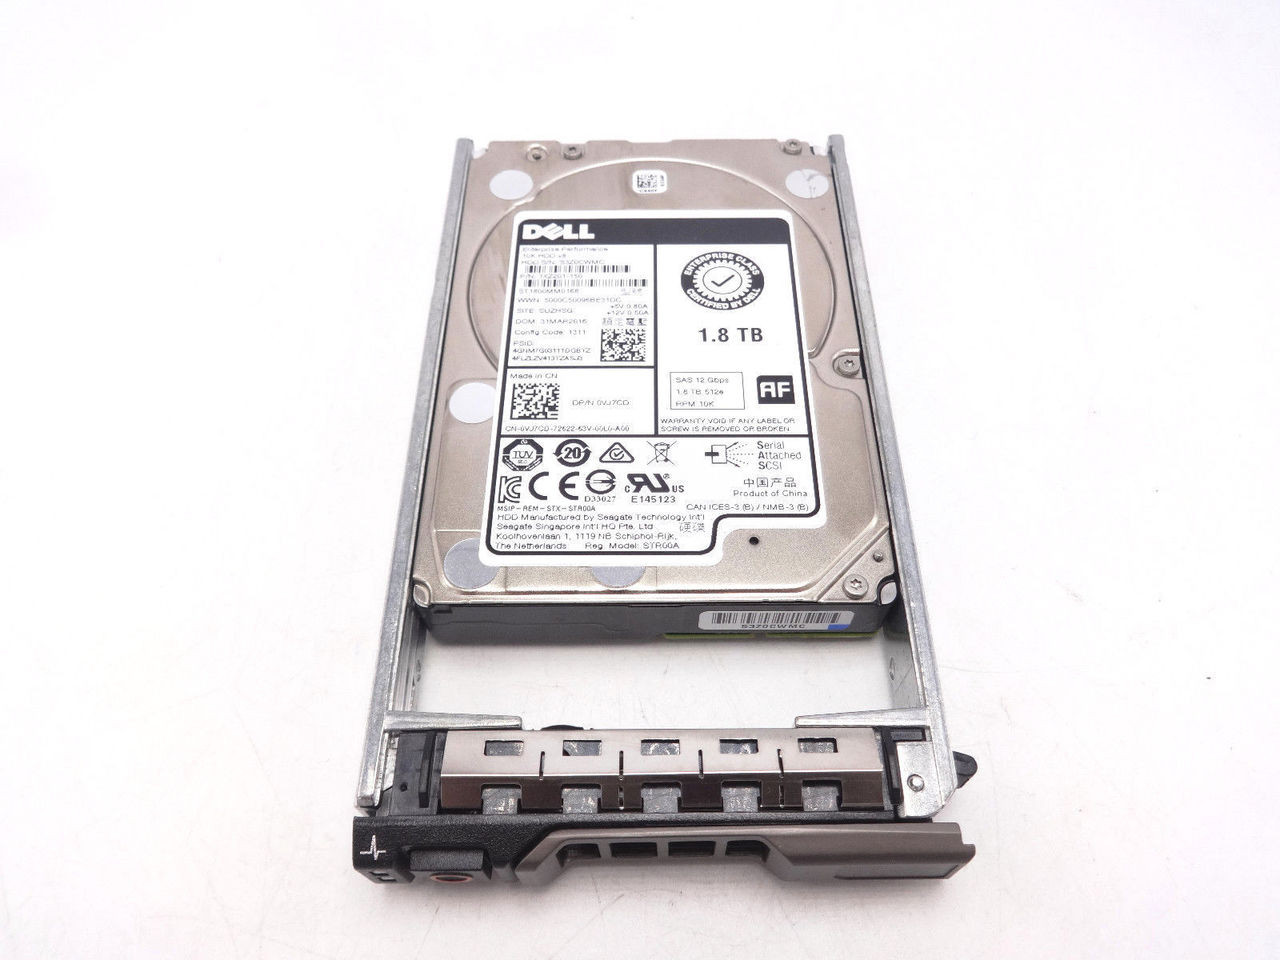 TVJ7CD Dell 1.8TB SAS 10K 2.5 Hard Drive